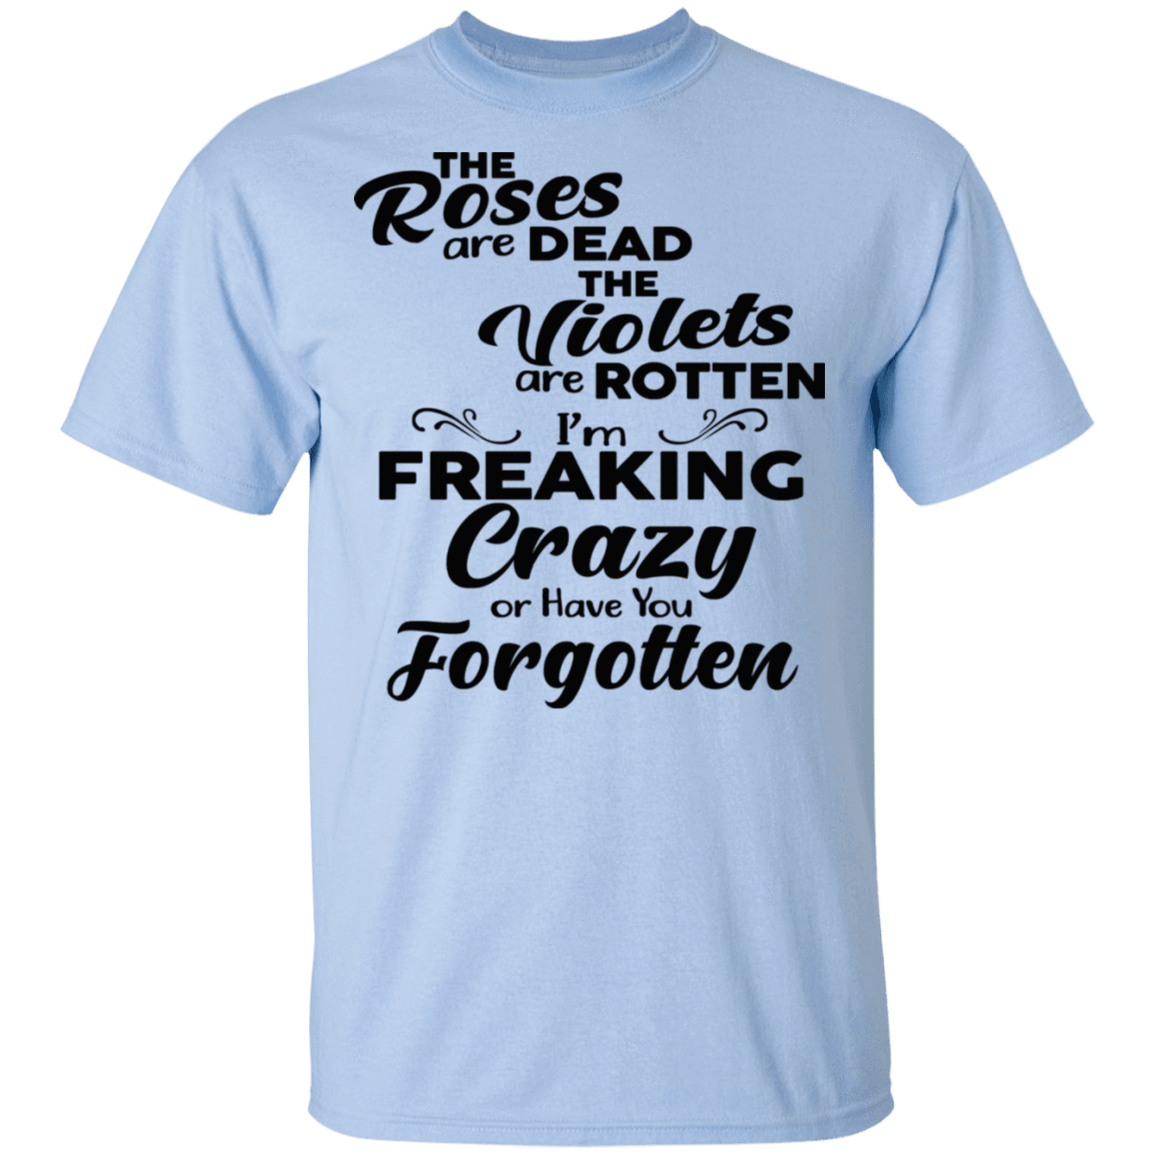 The Roses Are Dead The Violets Are Rotten I'm Freaking Crazy Or Have You Forgotten T-Shirts, Hoodies 22-9800-79929388-47430 - Tee Ript